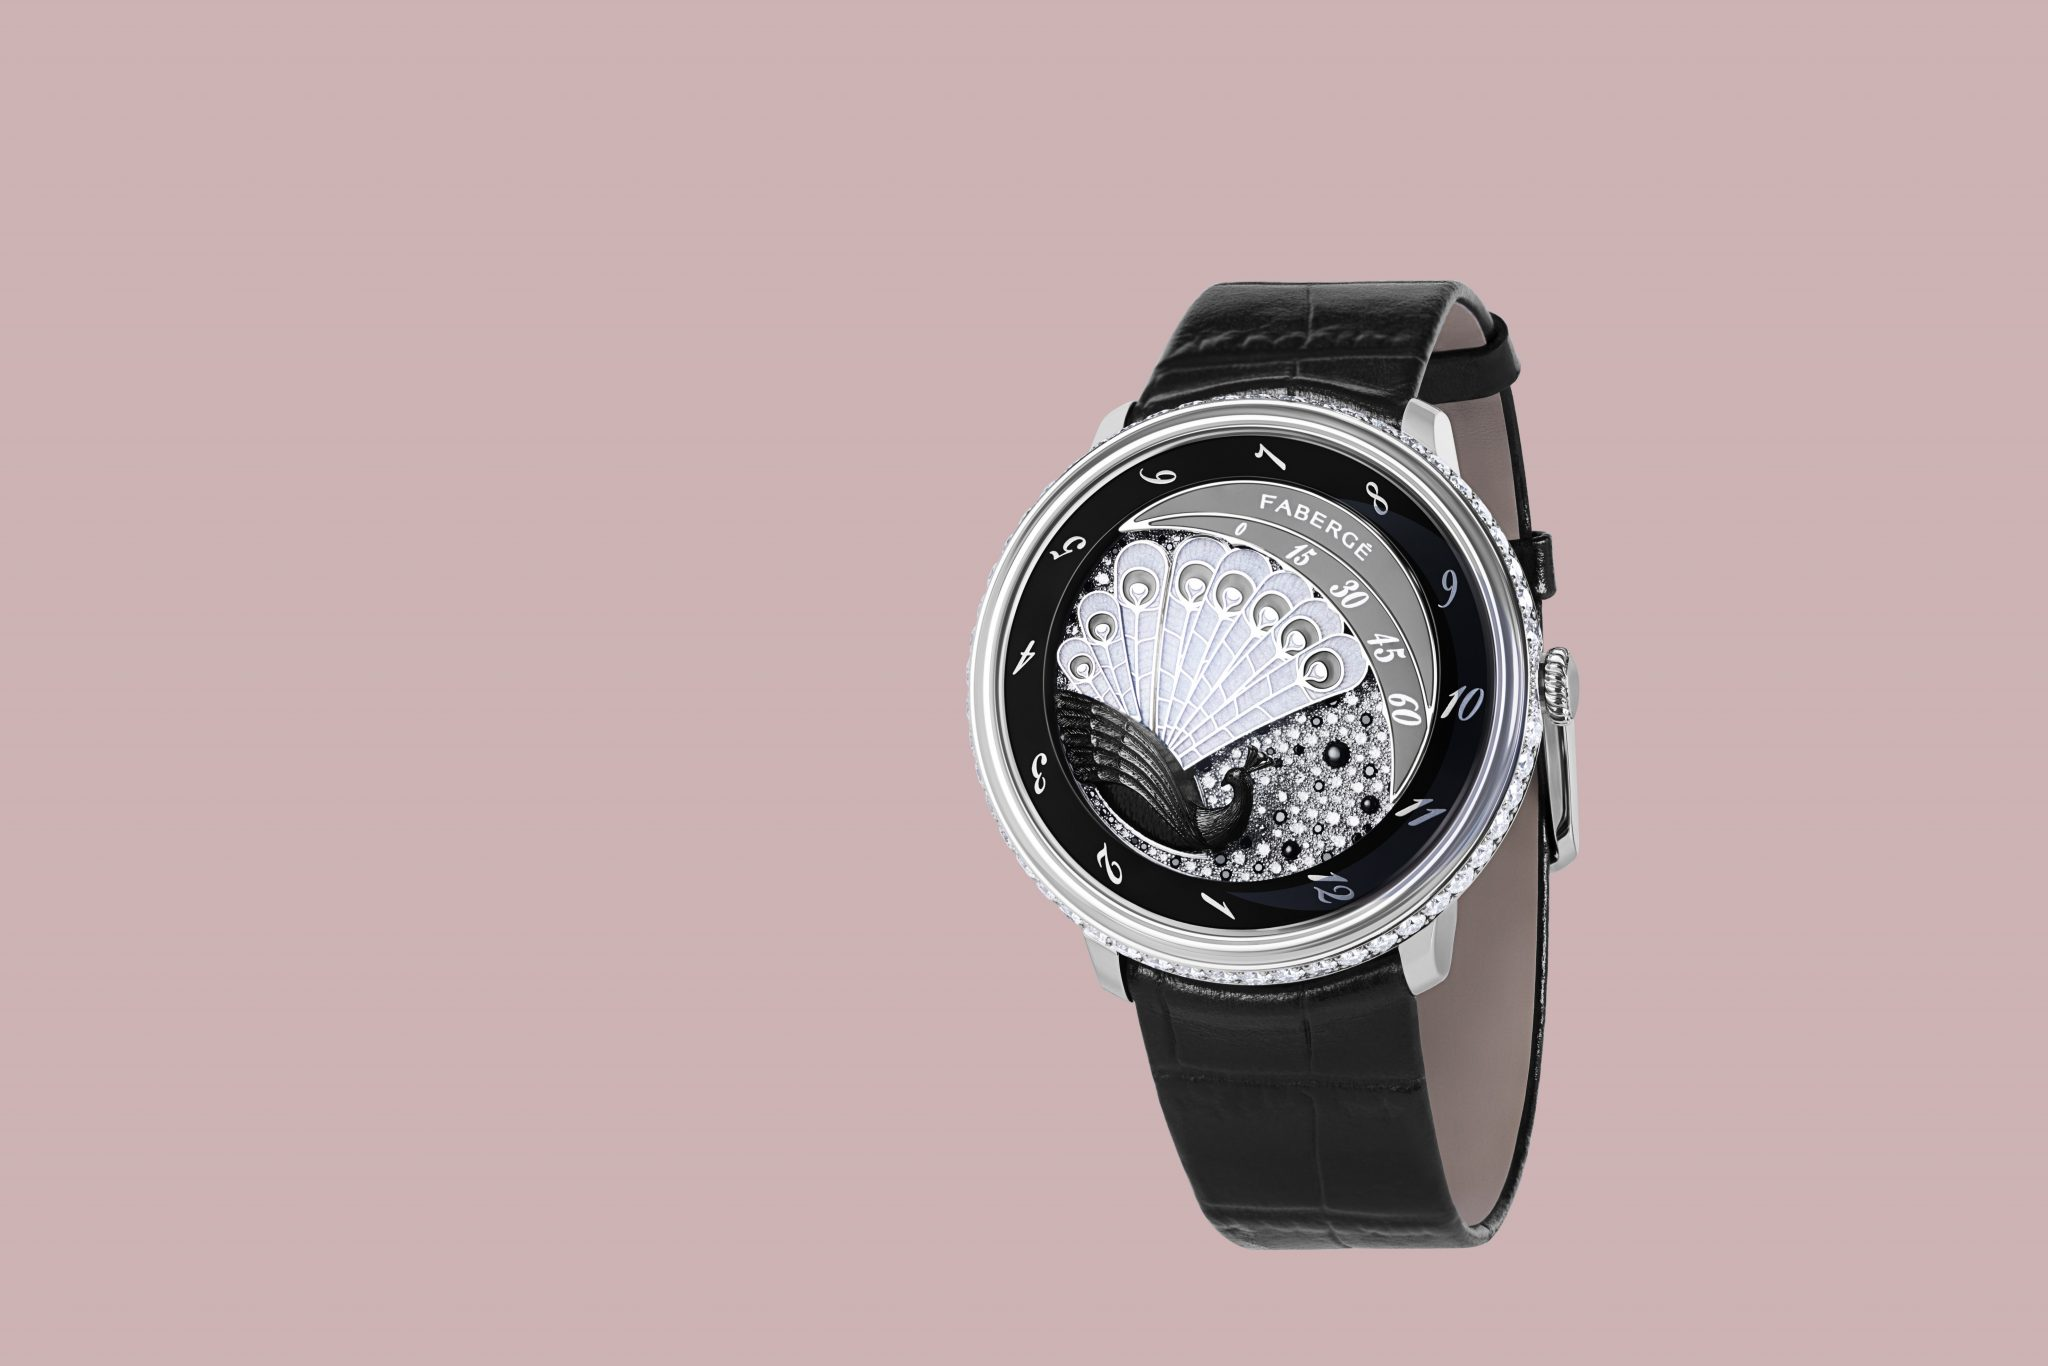 watch faberge